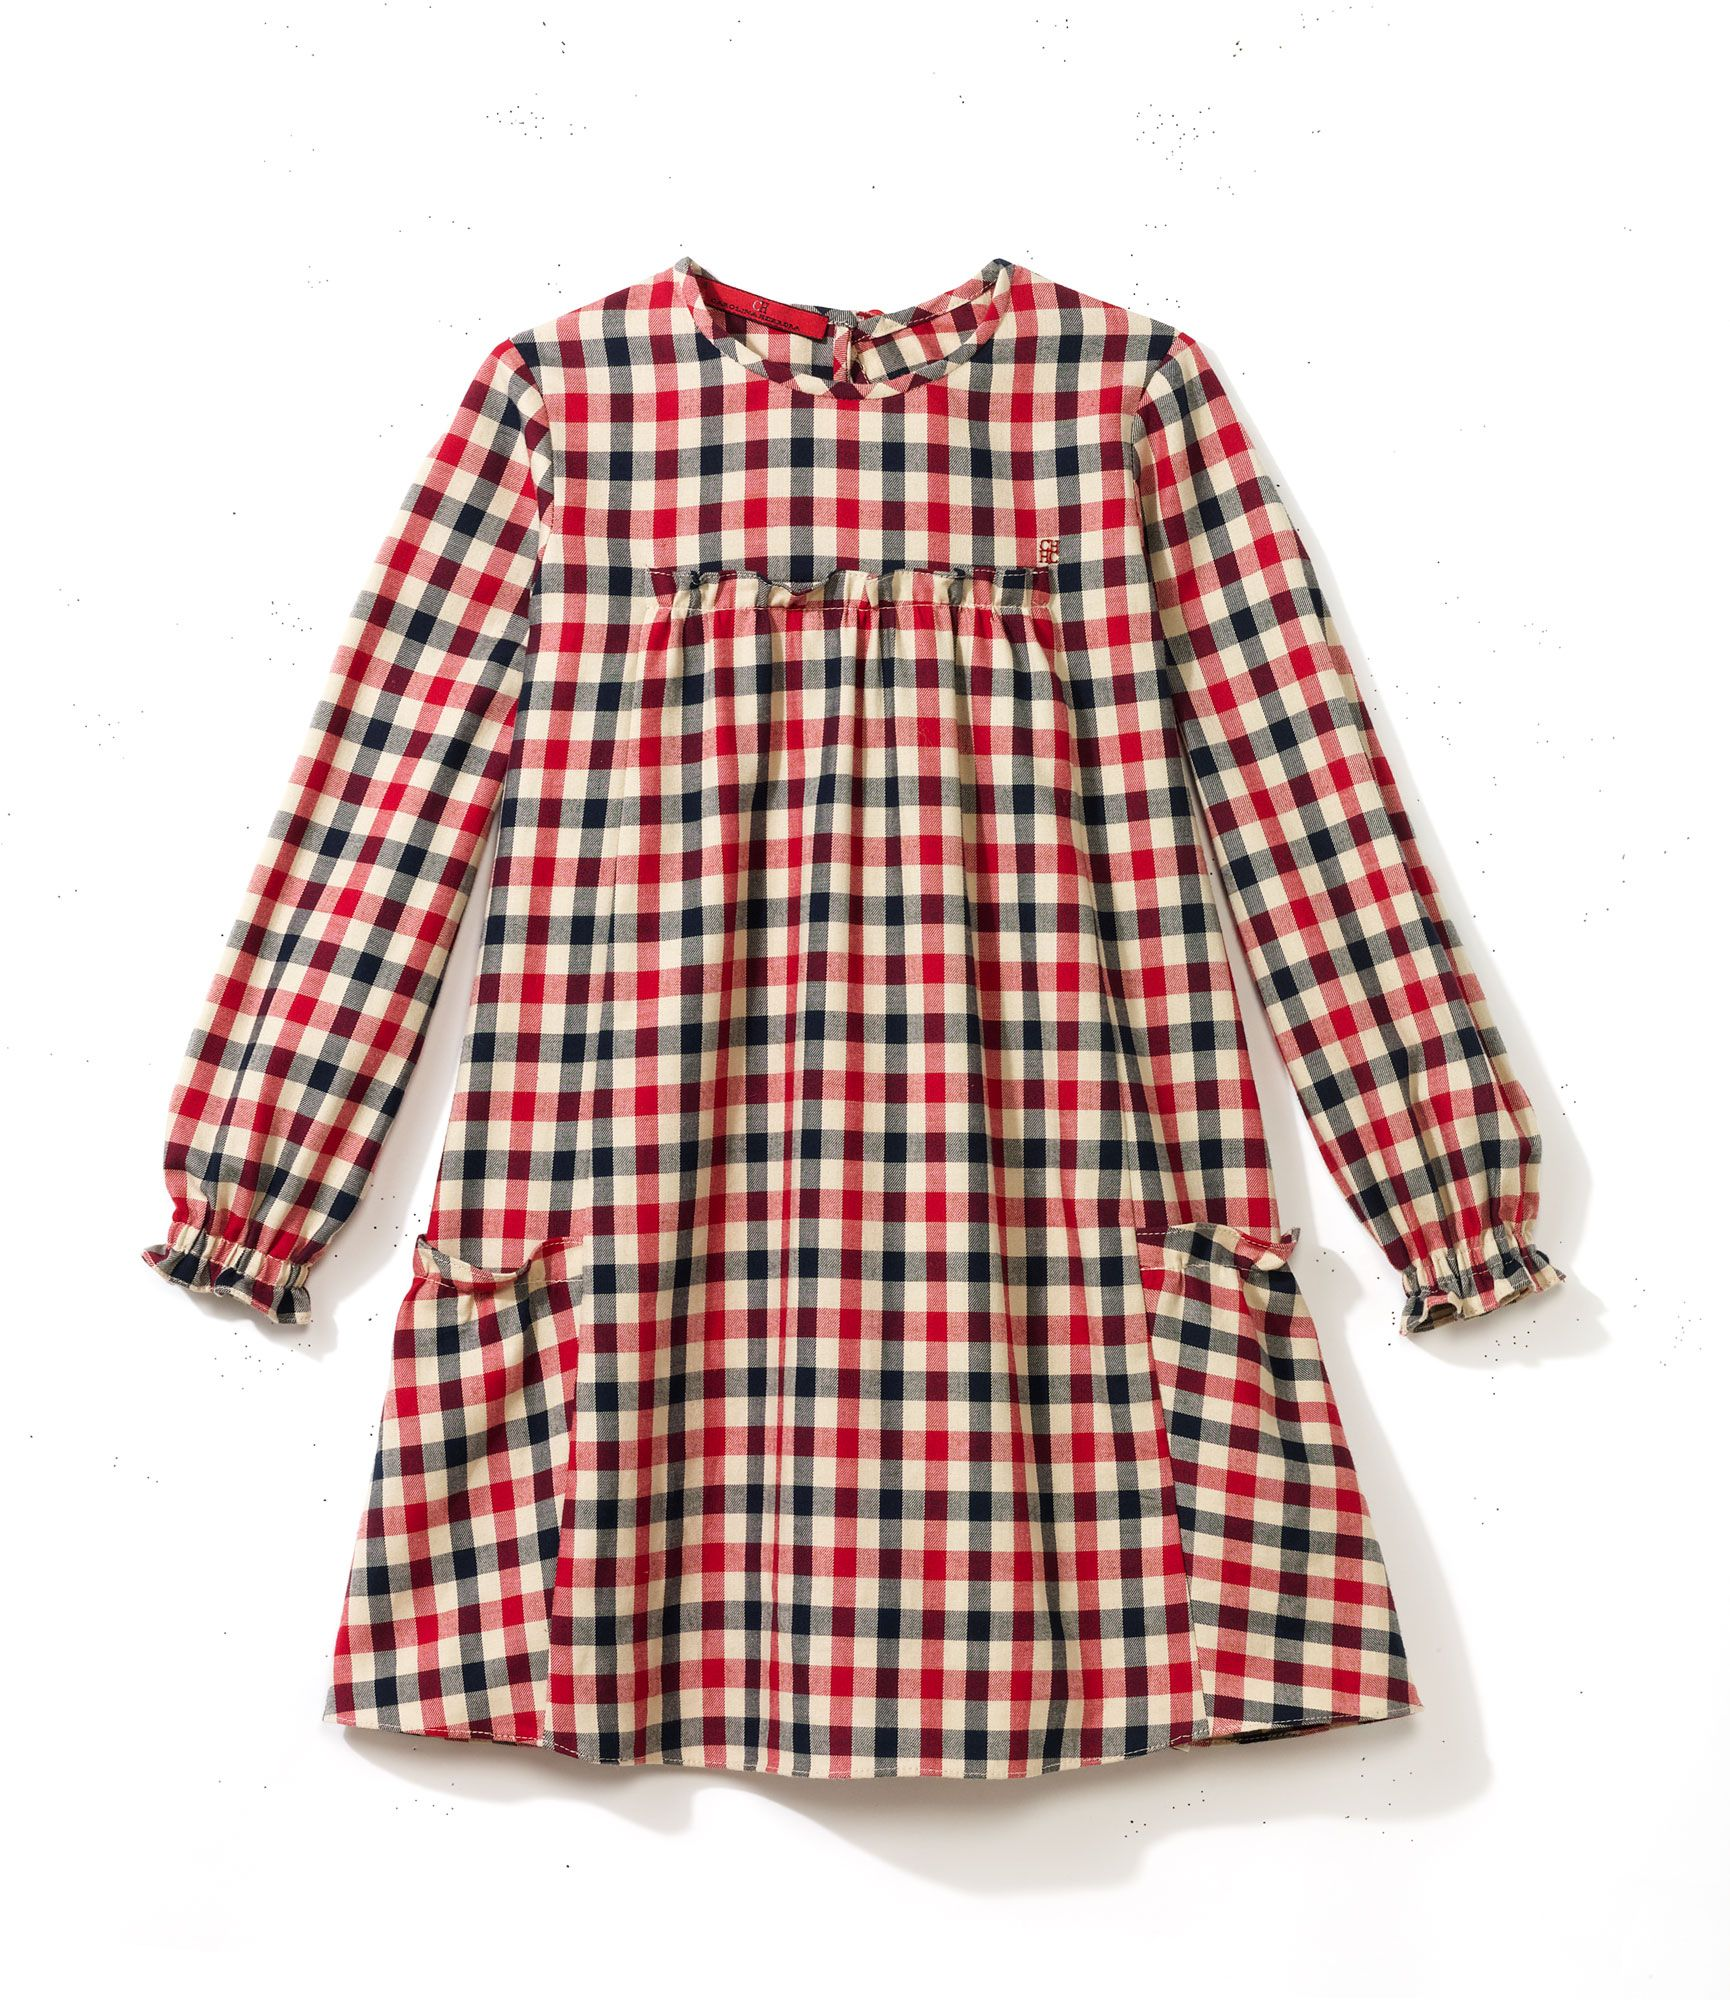 Toddler Girl Size 12-18 Months Gray GAP Baby Green /& Pink Plaid Flannel Dress